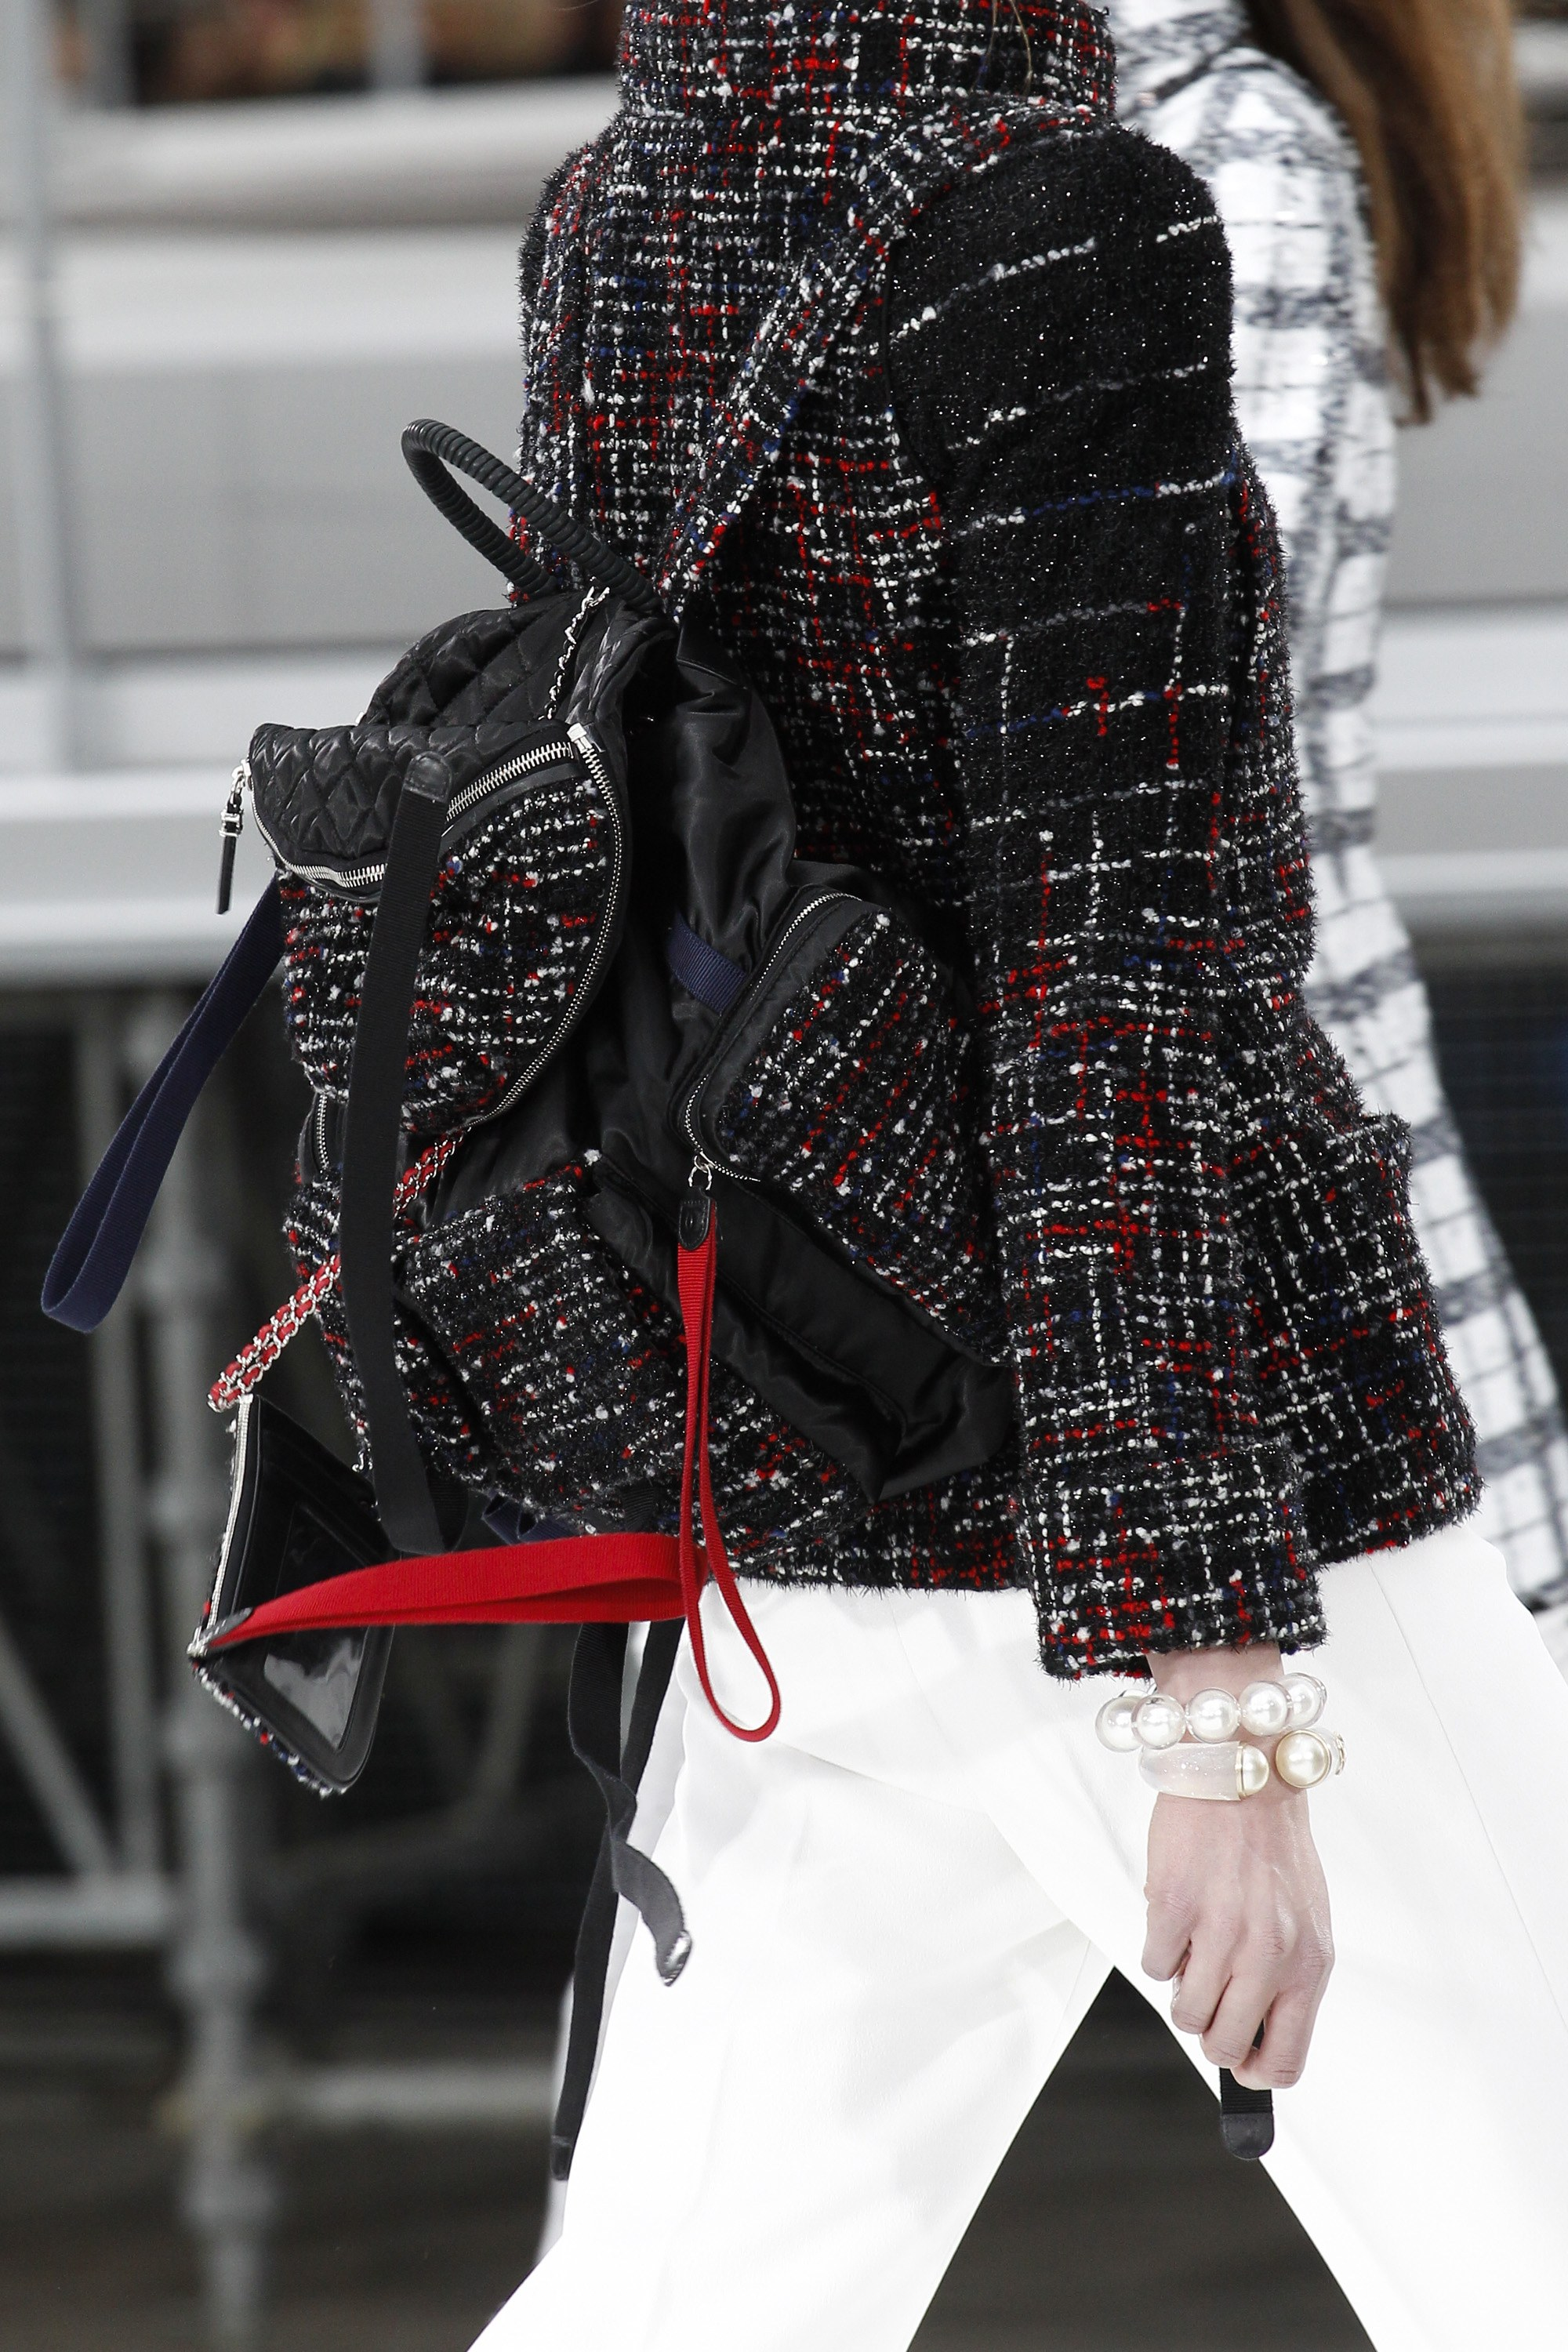 If there's one thing that Chanel does perfectly right, it's tweed.